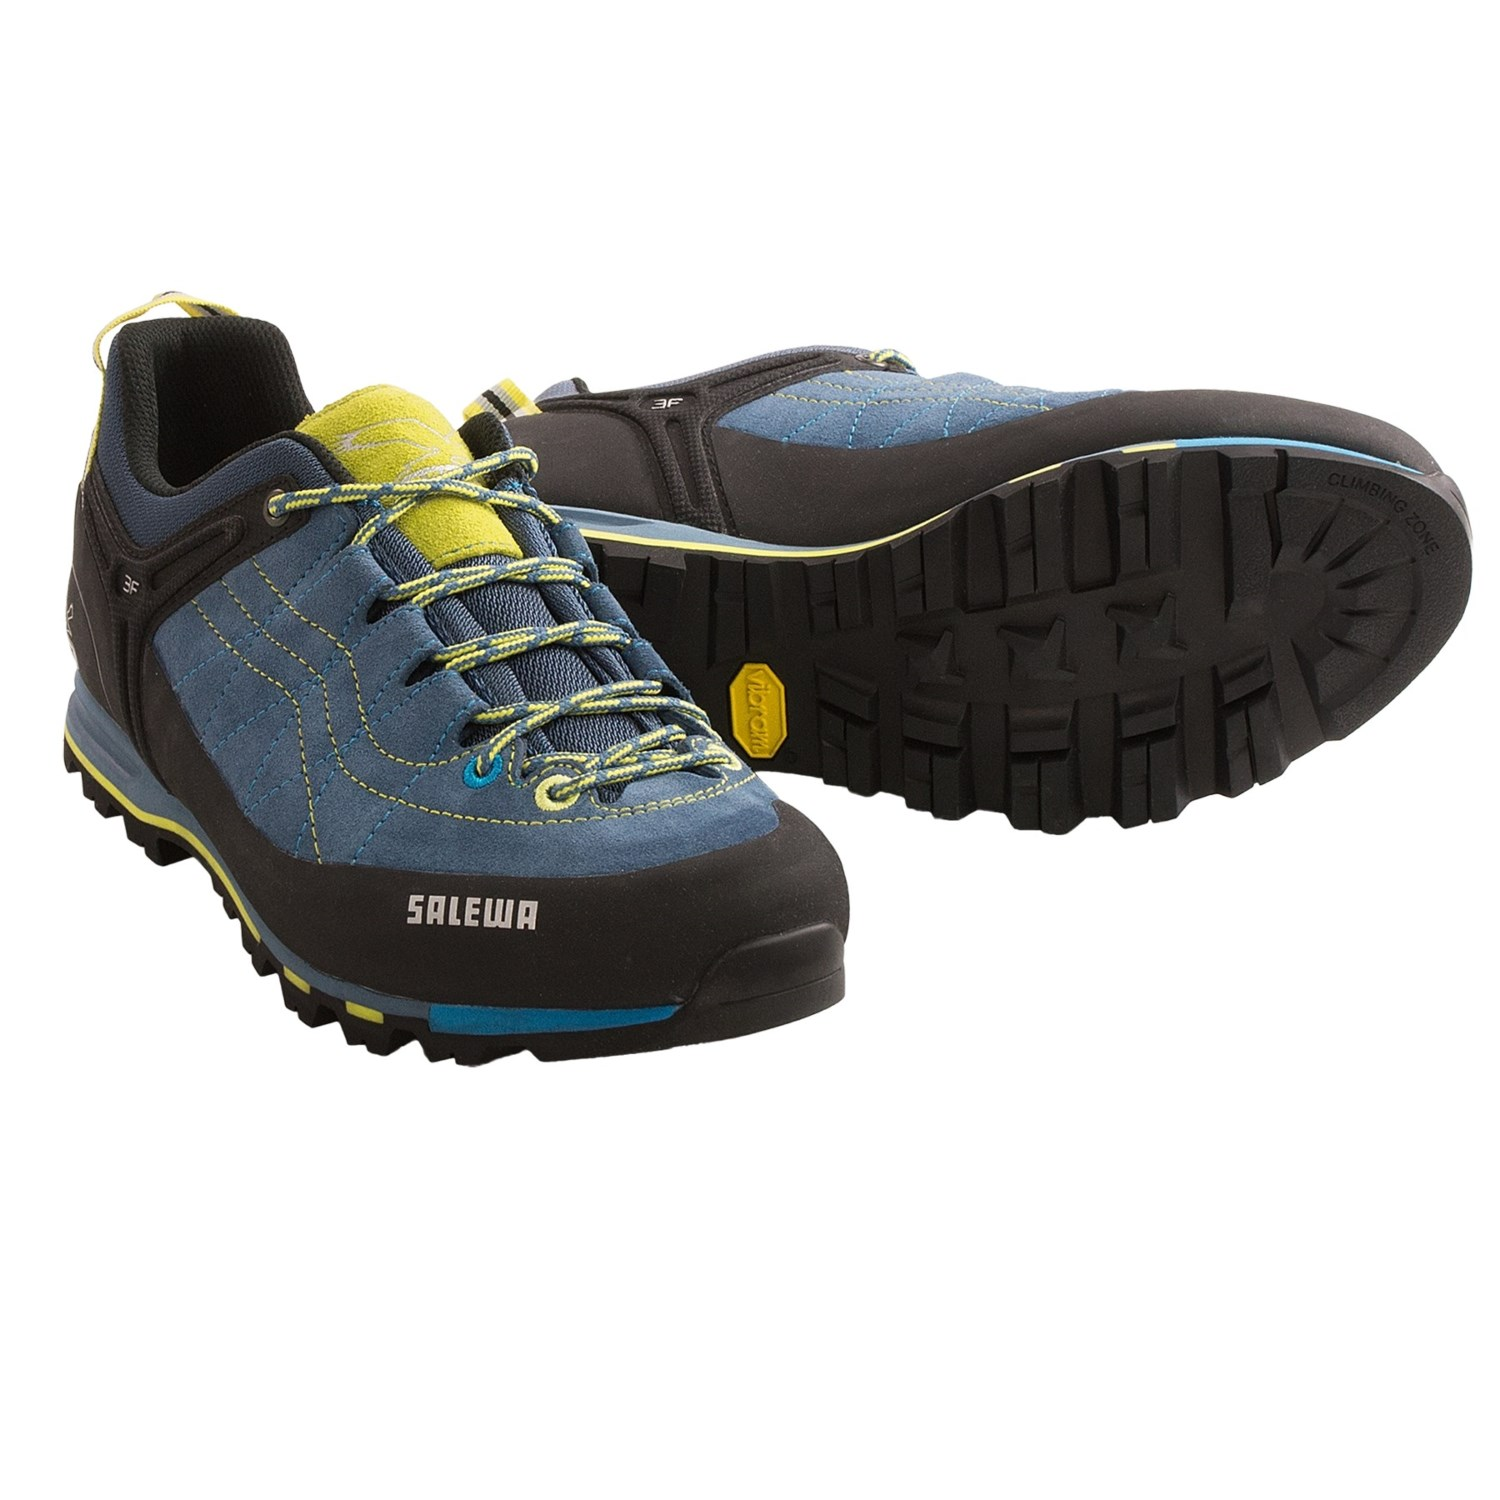 Top Rated Women's Hiking Boots 2015